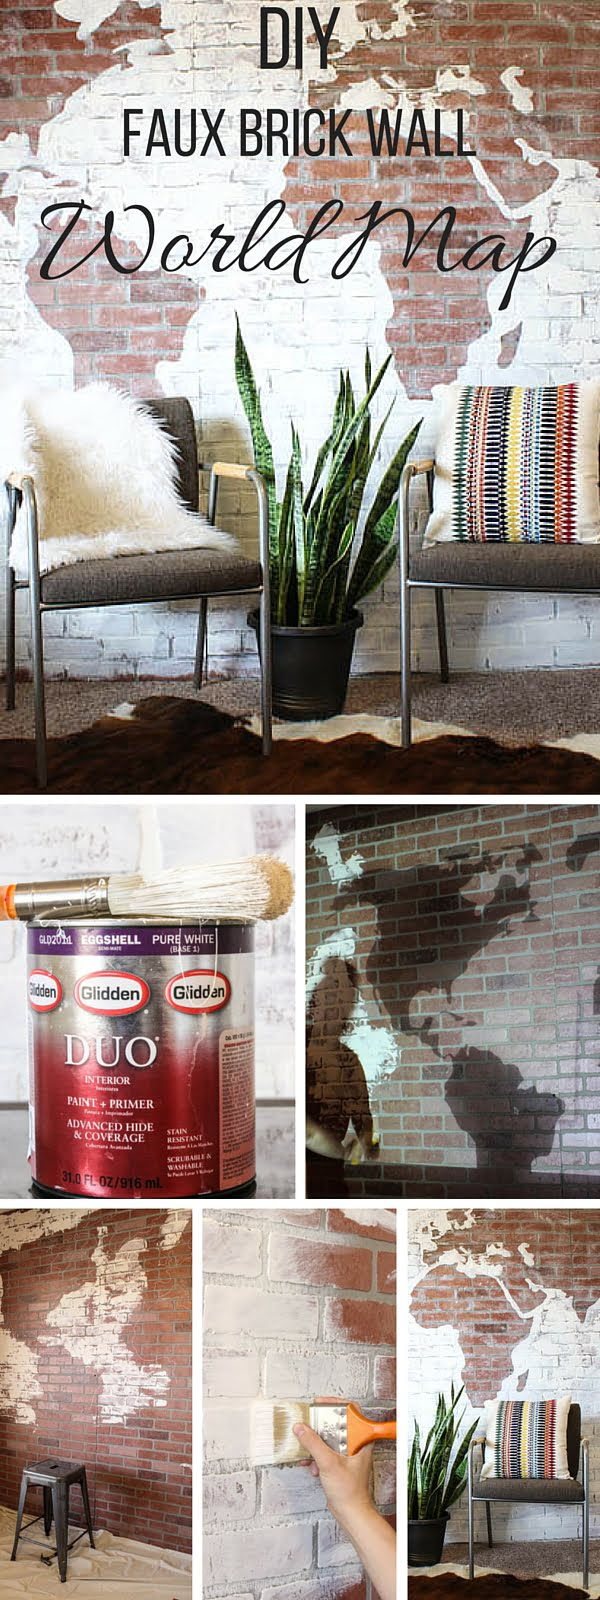 Check out the tutorial:  Faux Brick Wall World Map